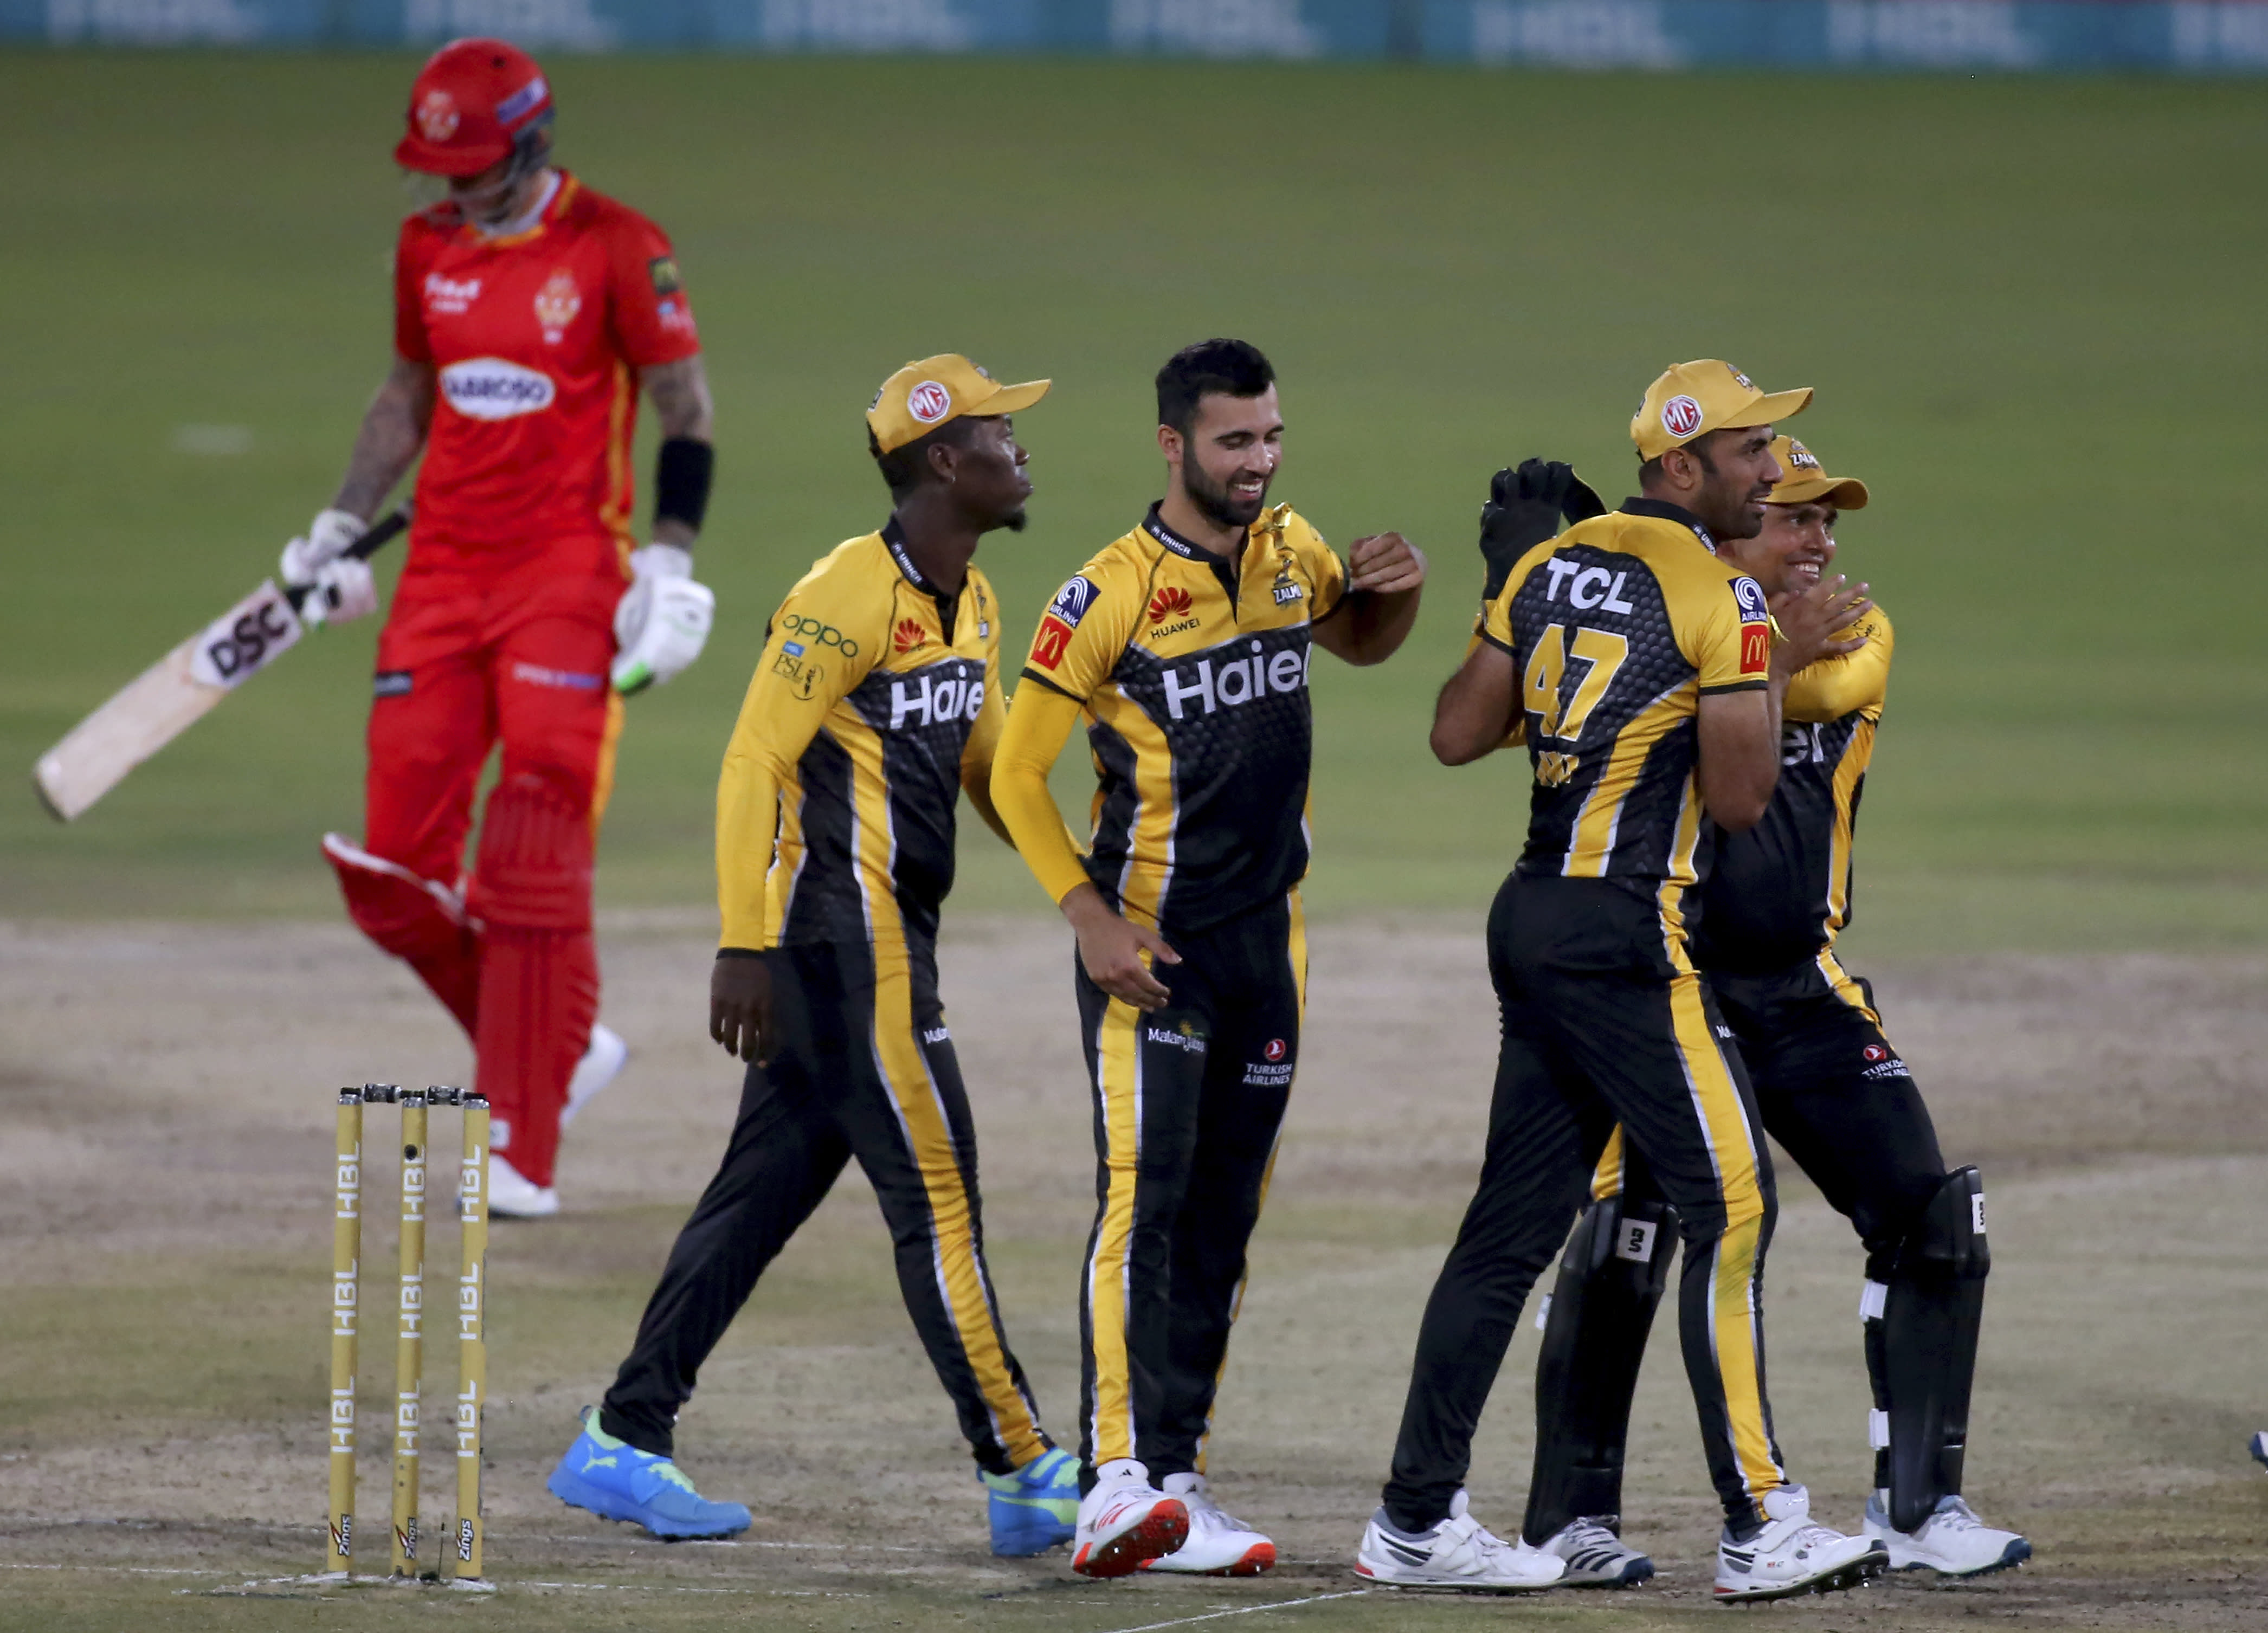 Peshawar Zalmi' Saqib Mahmood, center, celebrates with teammates after taking the wicket of Islamabad United' Alex Hales, left, during a Pakistan Super League T20 cricket match between Islamabad United and Peshawar Zalmi at the National Stadium, in Karachi, Pakistan, Saturday, Feb. 27, 2021. (AP Photo/Fareed Khan)